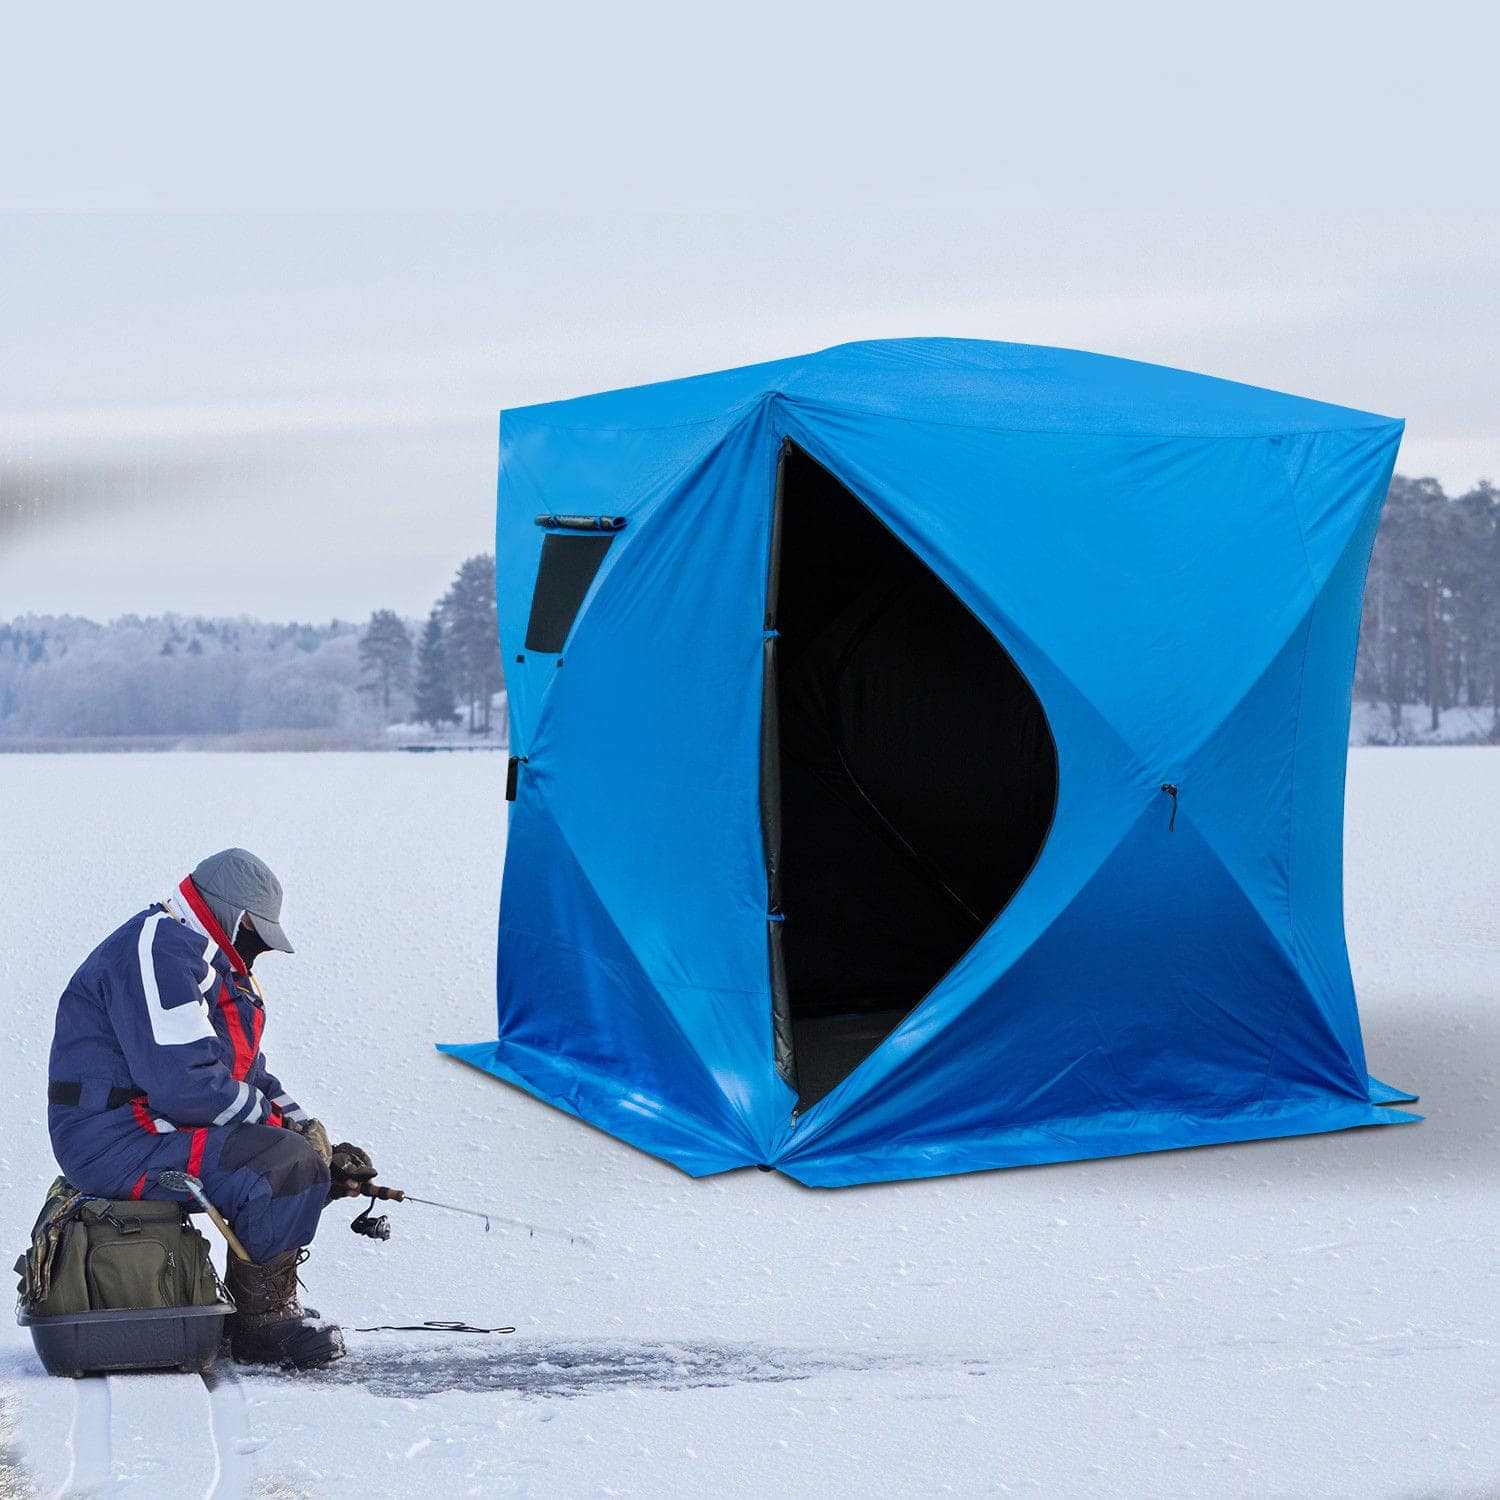 Outsunny 4 Person Pop-Up Ice Fishing Shelter $94.99 + Free Shipping